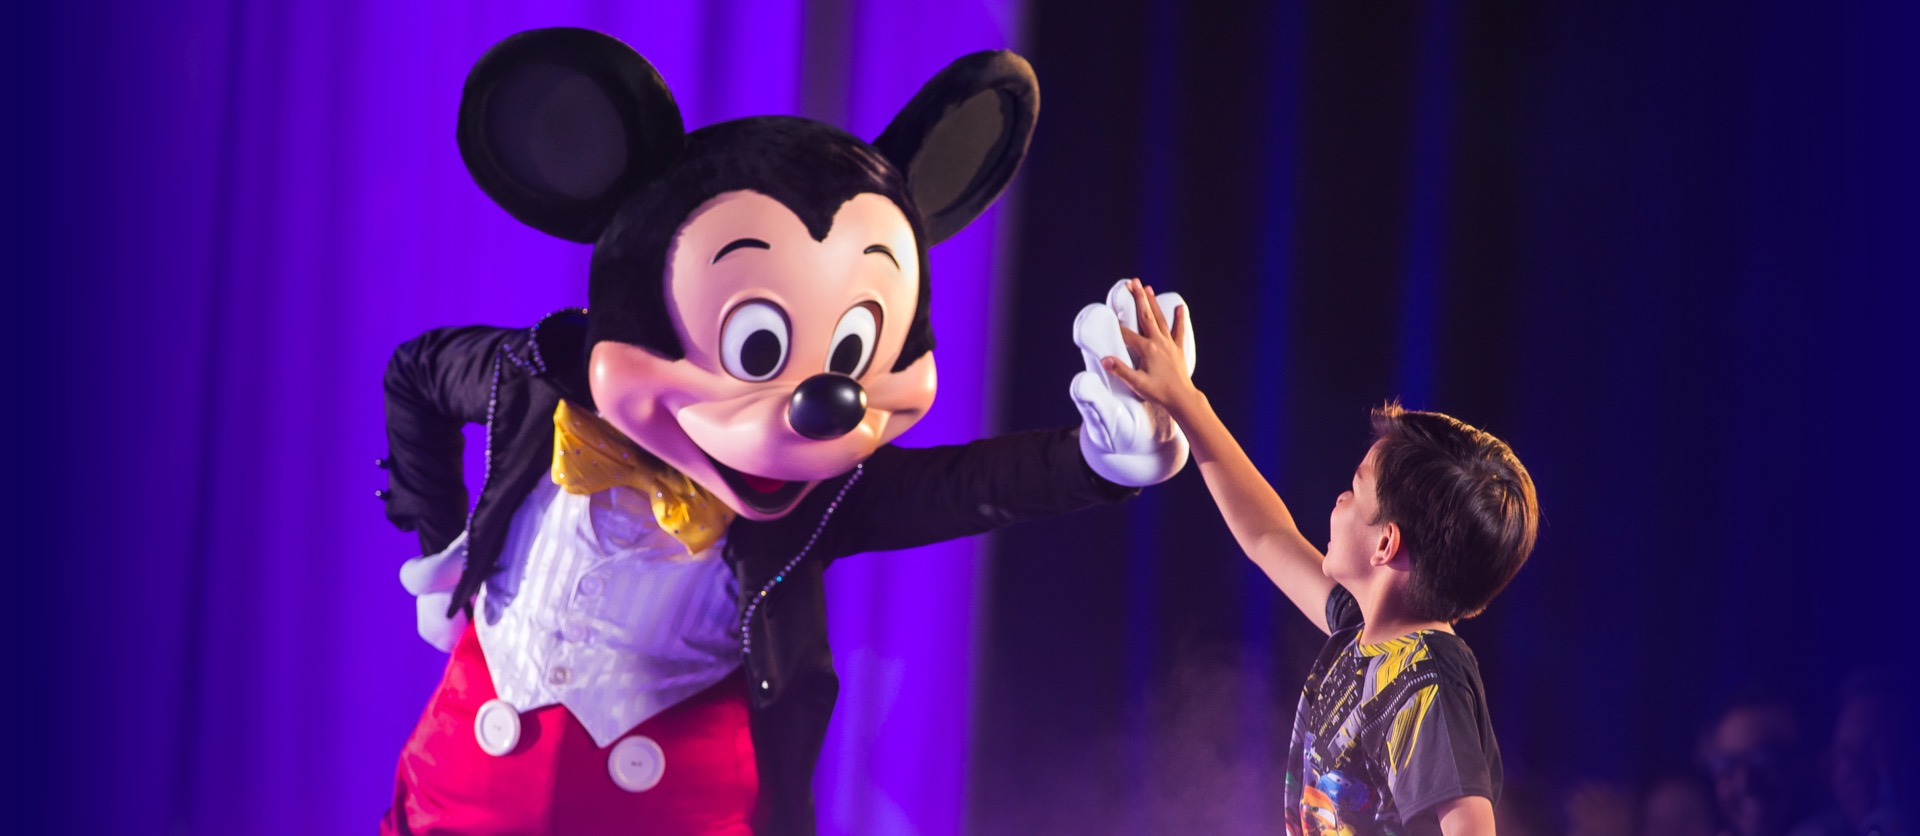 Mickey Mouse gives young boy a high five